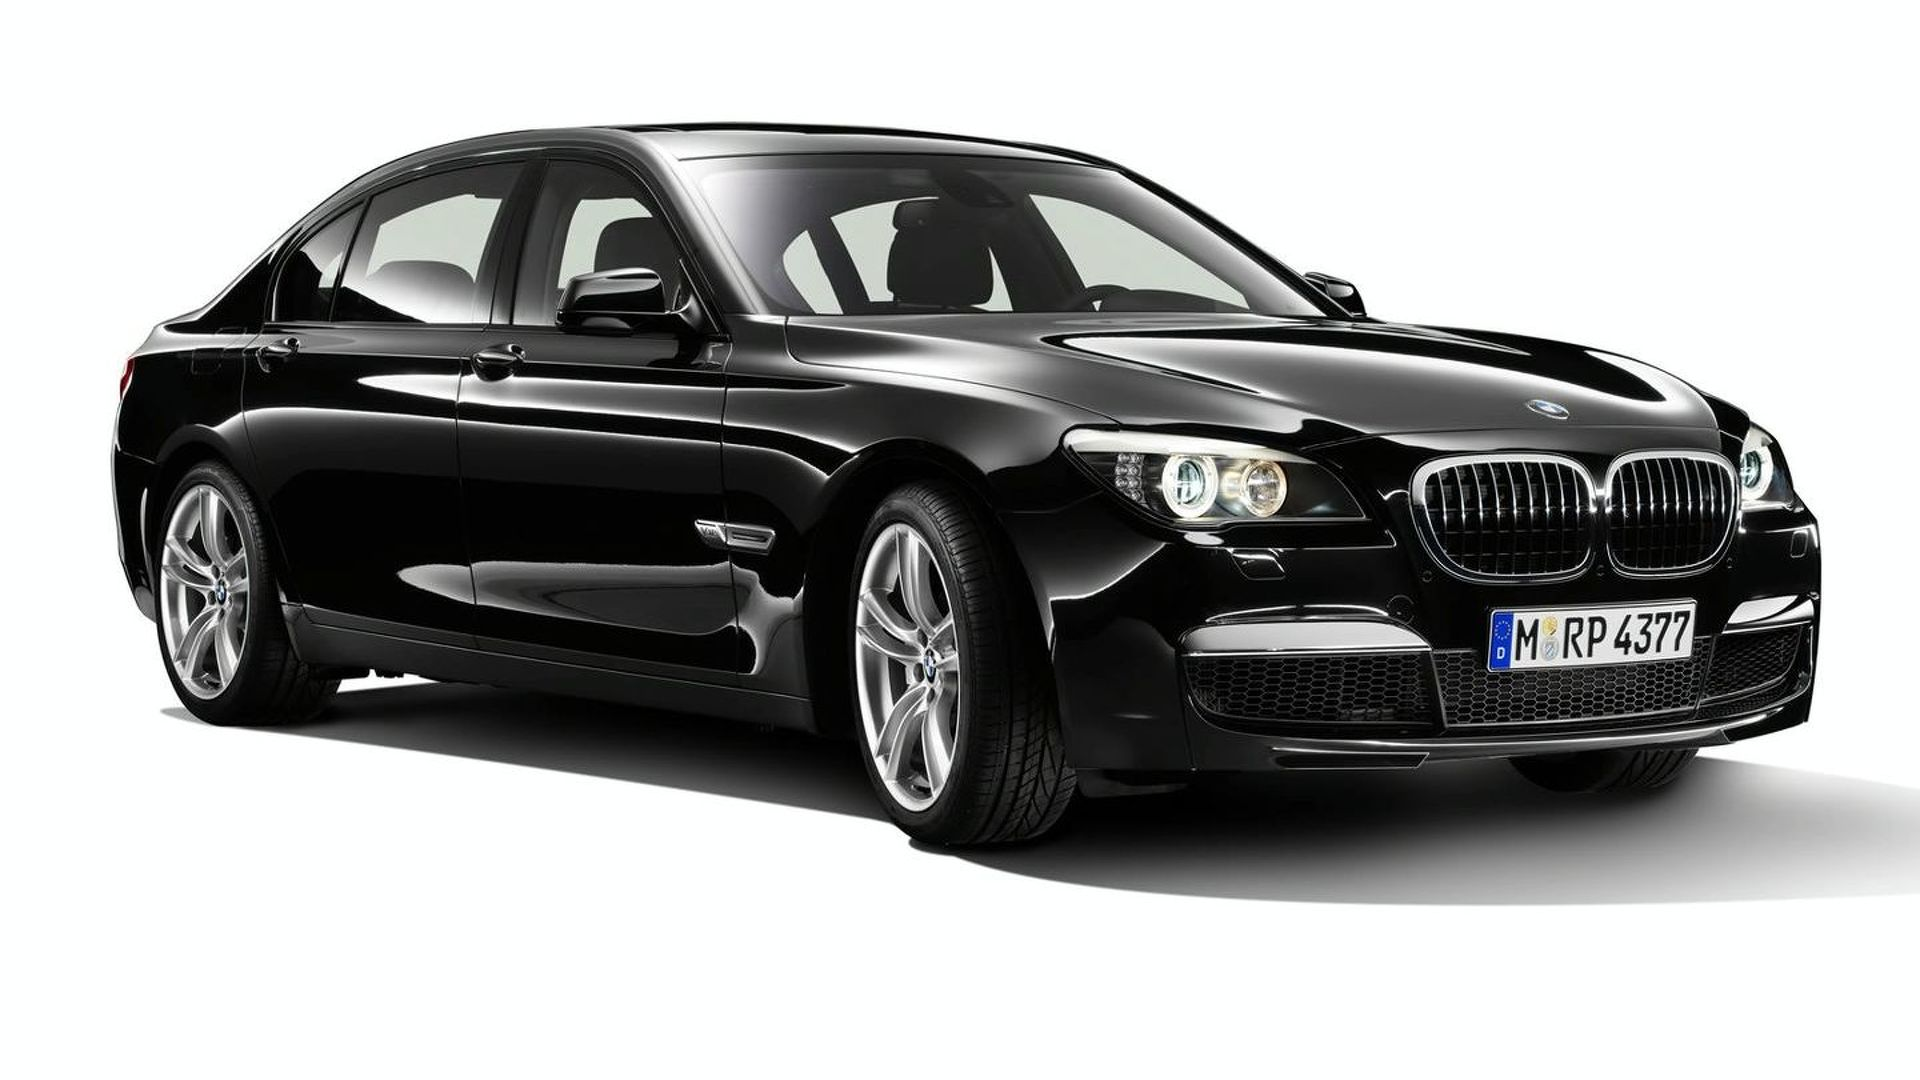 Official 2010 Bmw 7 Series Gets Xdrive M Sports Package Amp Twin Turbo Diesel Engine